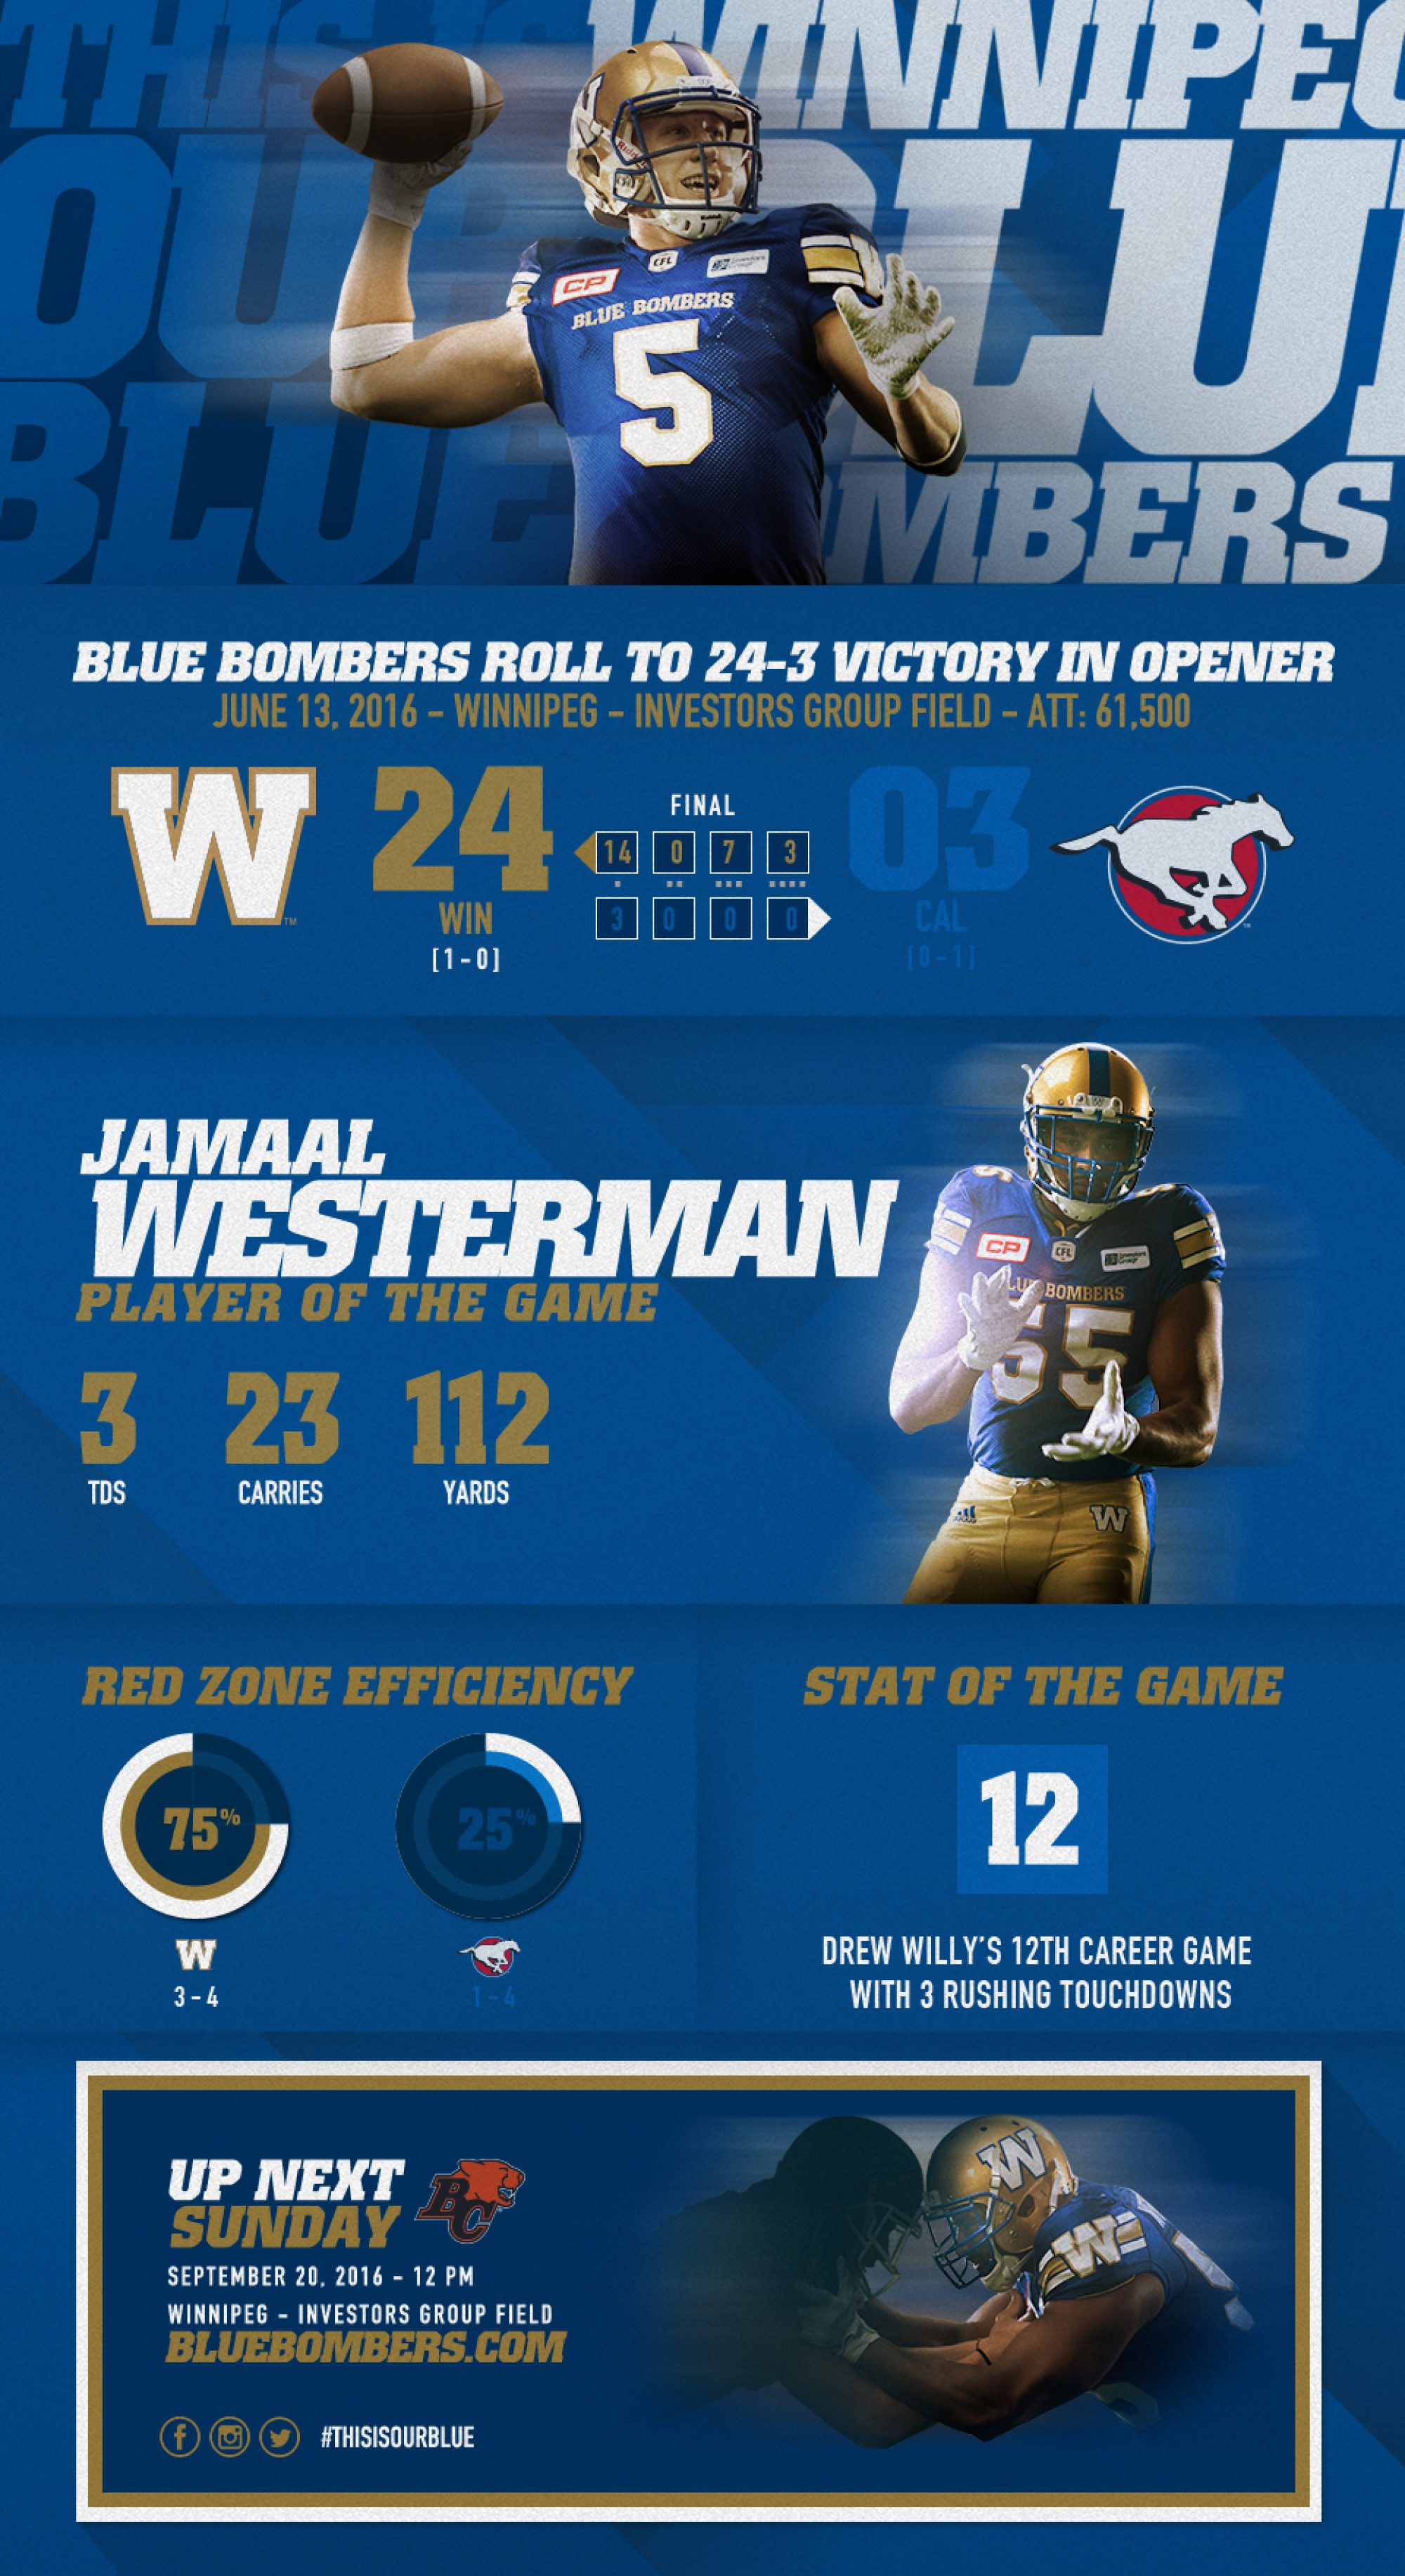 CFL_bluebombers_postgame_03